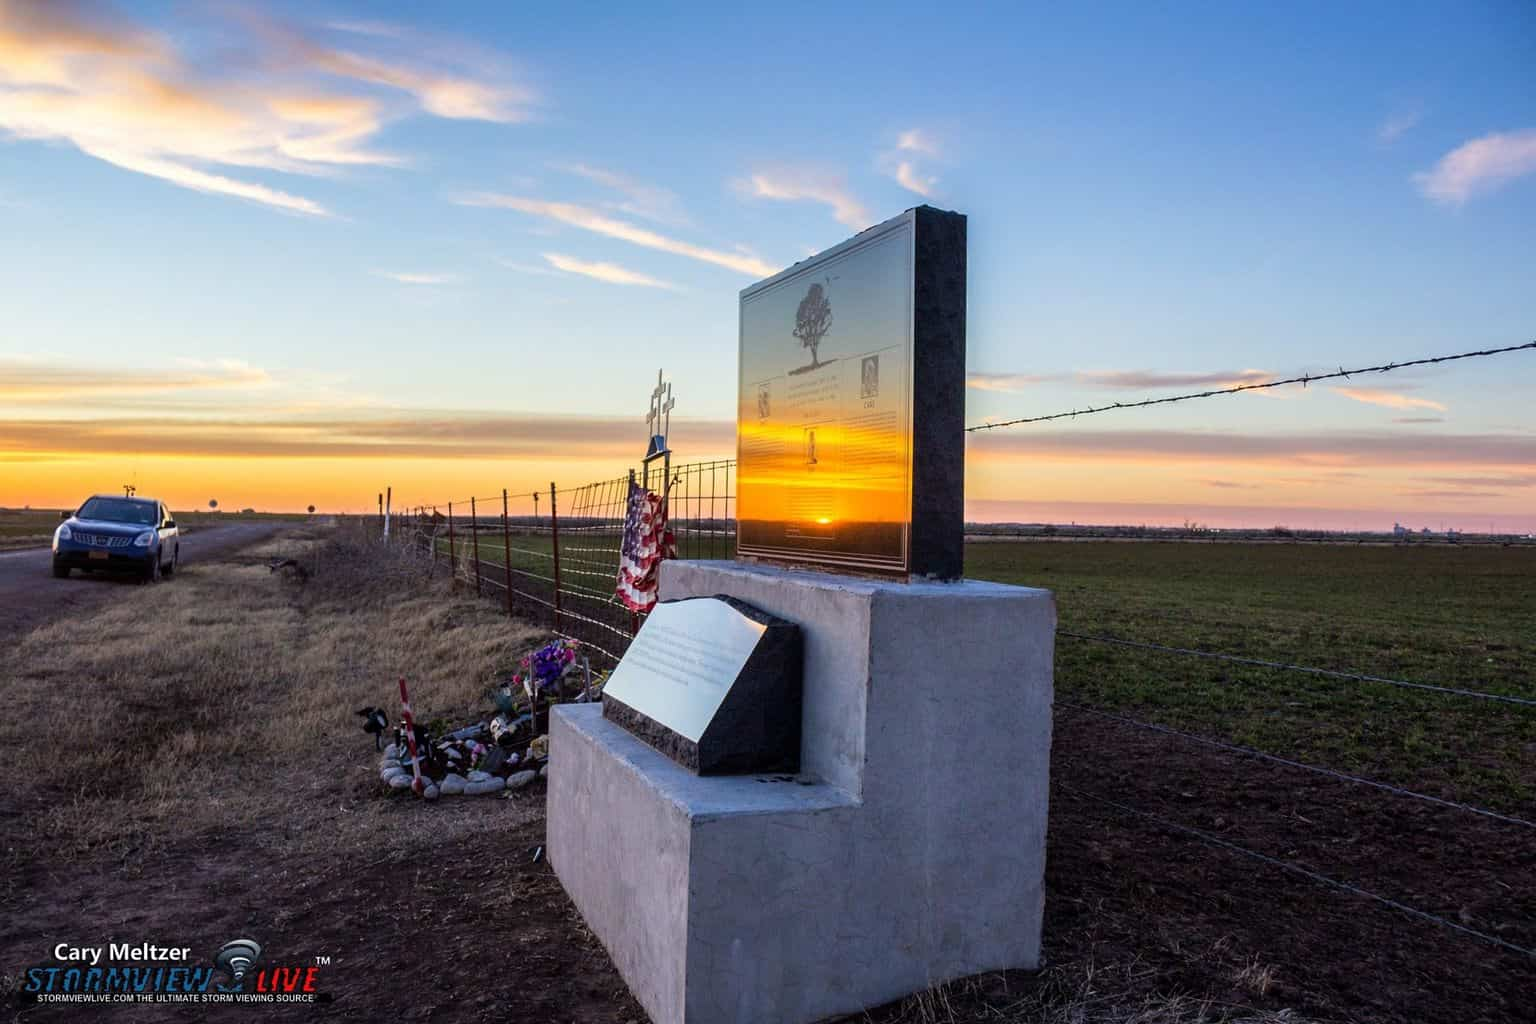 """Reflecting On Those We've Lost"" - El Reno, Oklahoma - Team Twistex Chaser Memorial dedicated to Tim Samaras, Paul Samaras, & Carl Young — at Twistex Memorial."